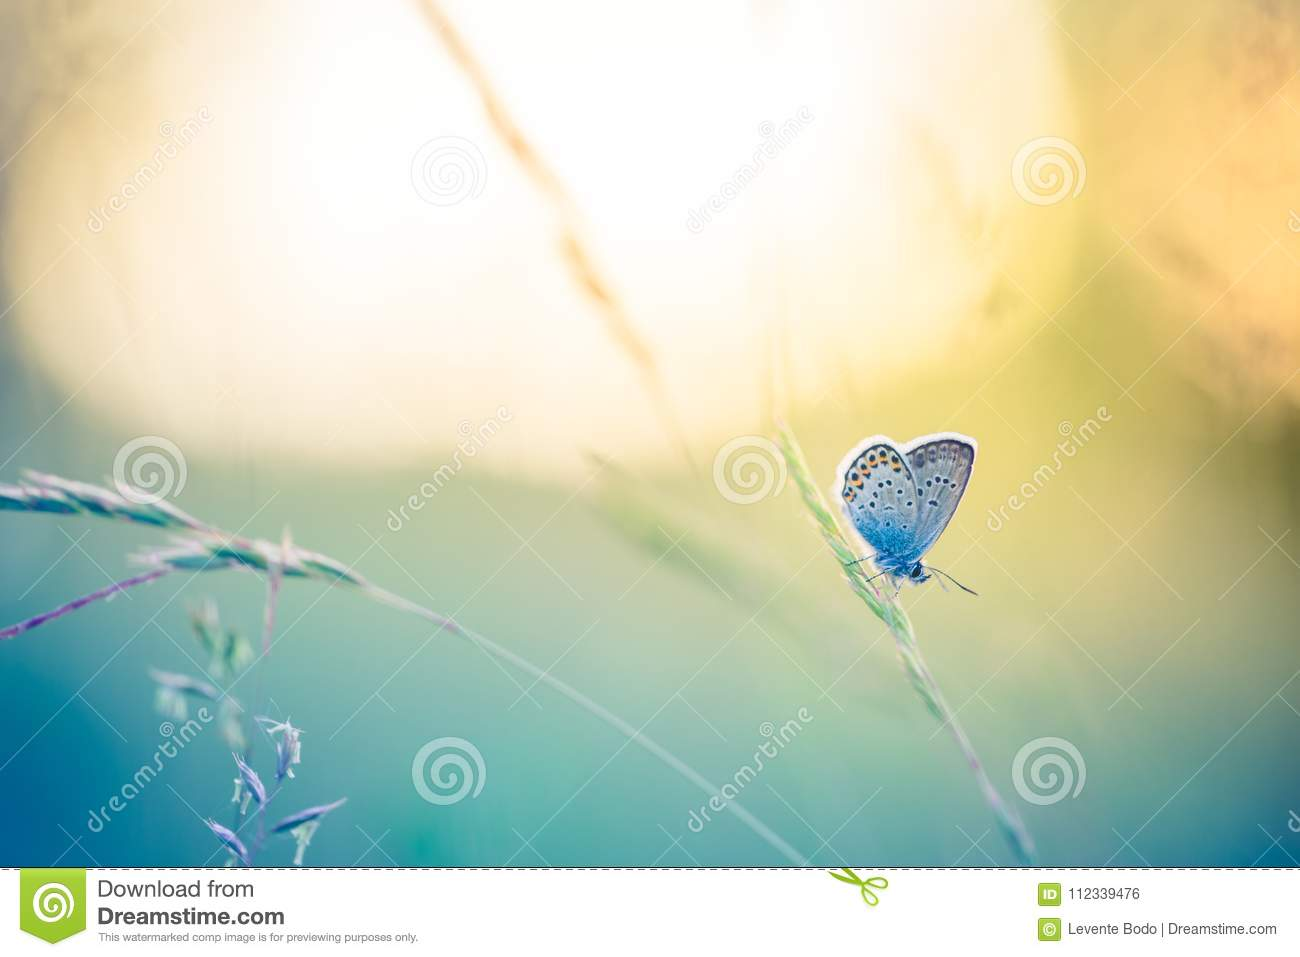 Beautiful nature close-up, summer flowers and butterfly under sunlight. Calm nature background